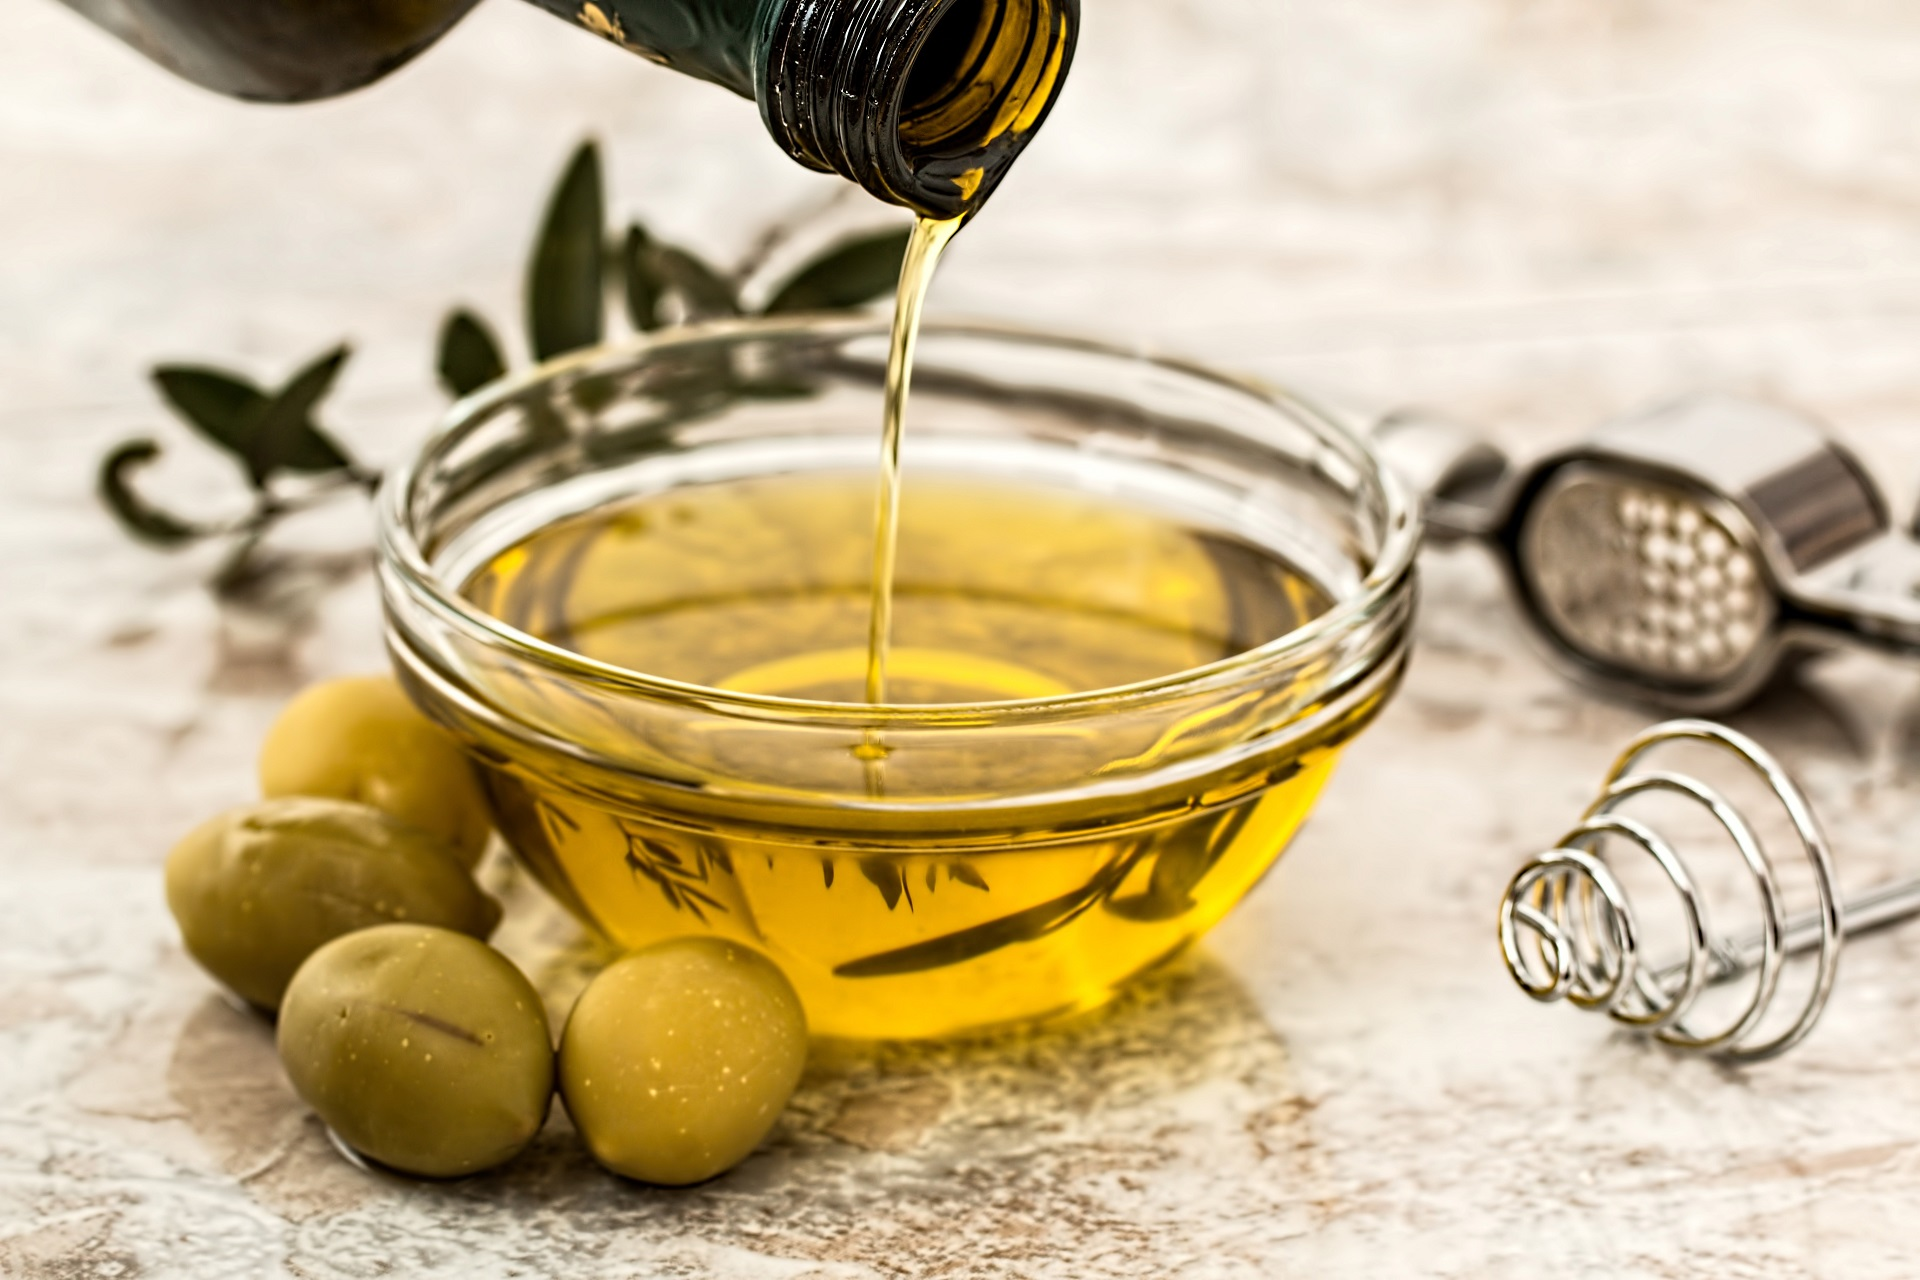 Olive oil as dressing for salads.